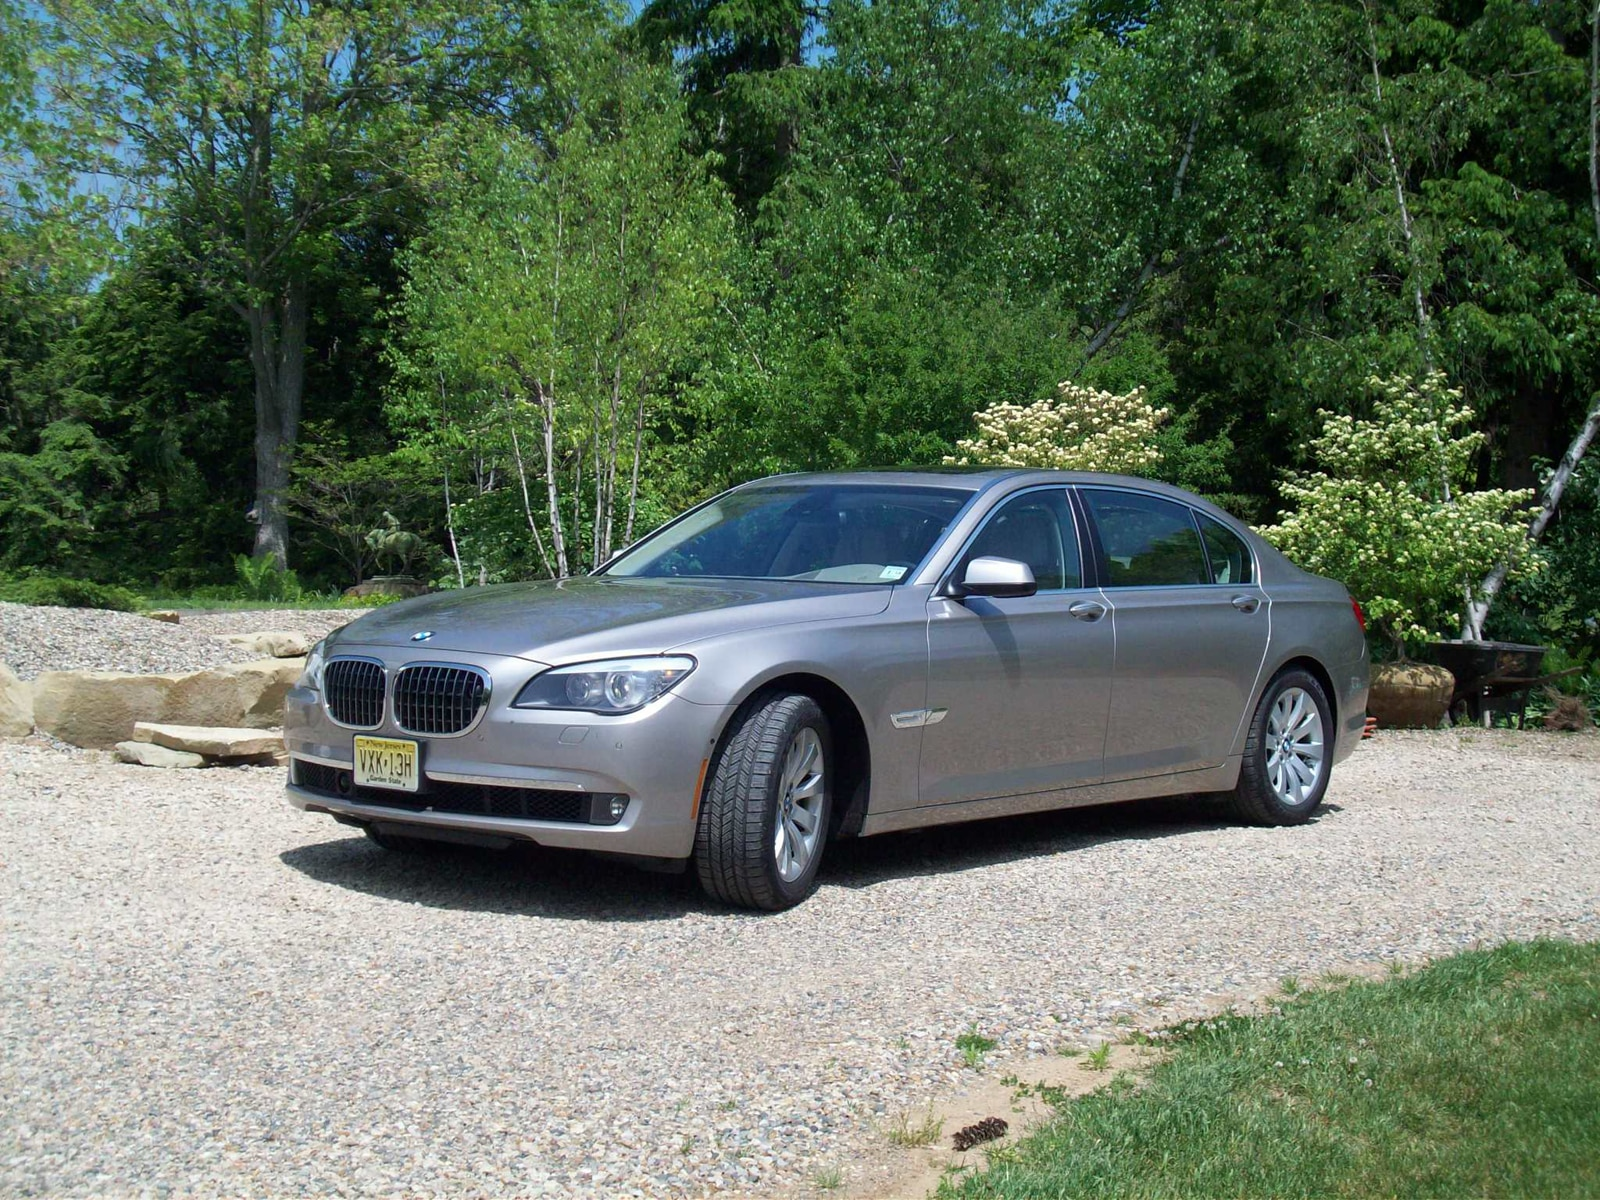 0910 01 Z 2009 BMW 750Li Front Three Quarter View